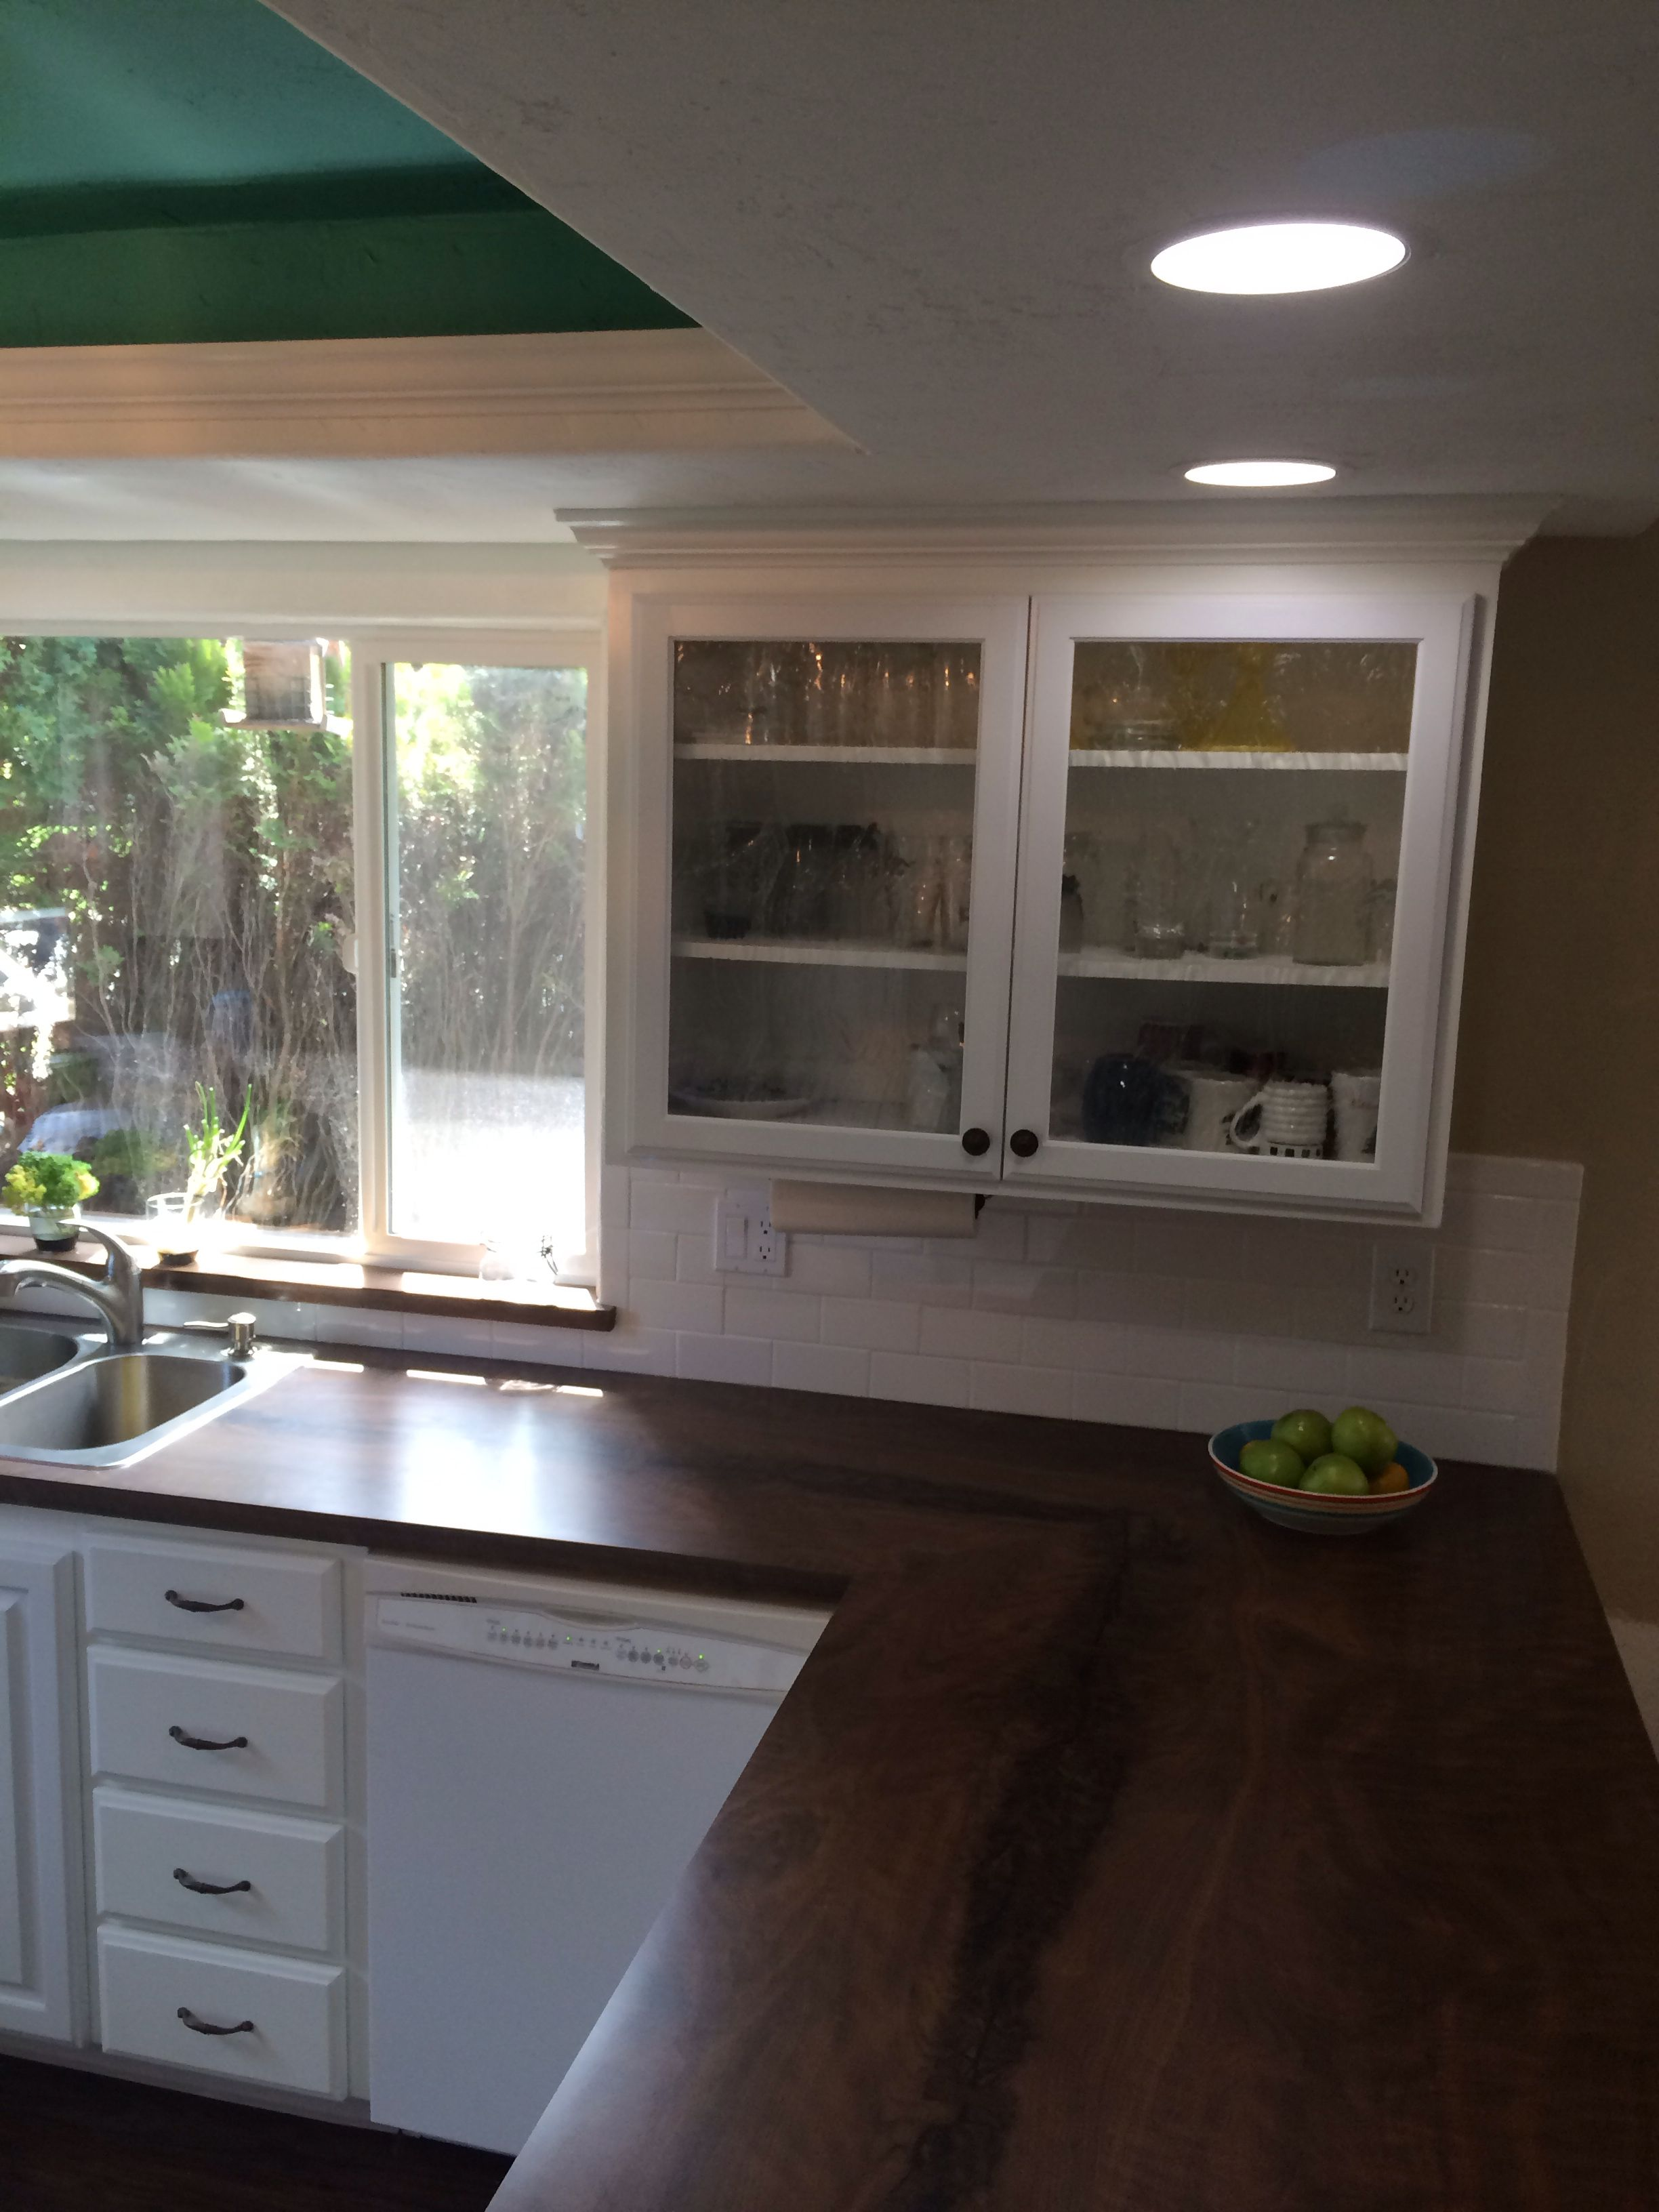 Best Kitchen With White Cabinets White Subway Tile And 400 x 300